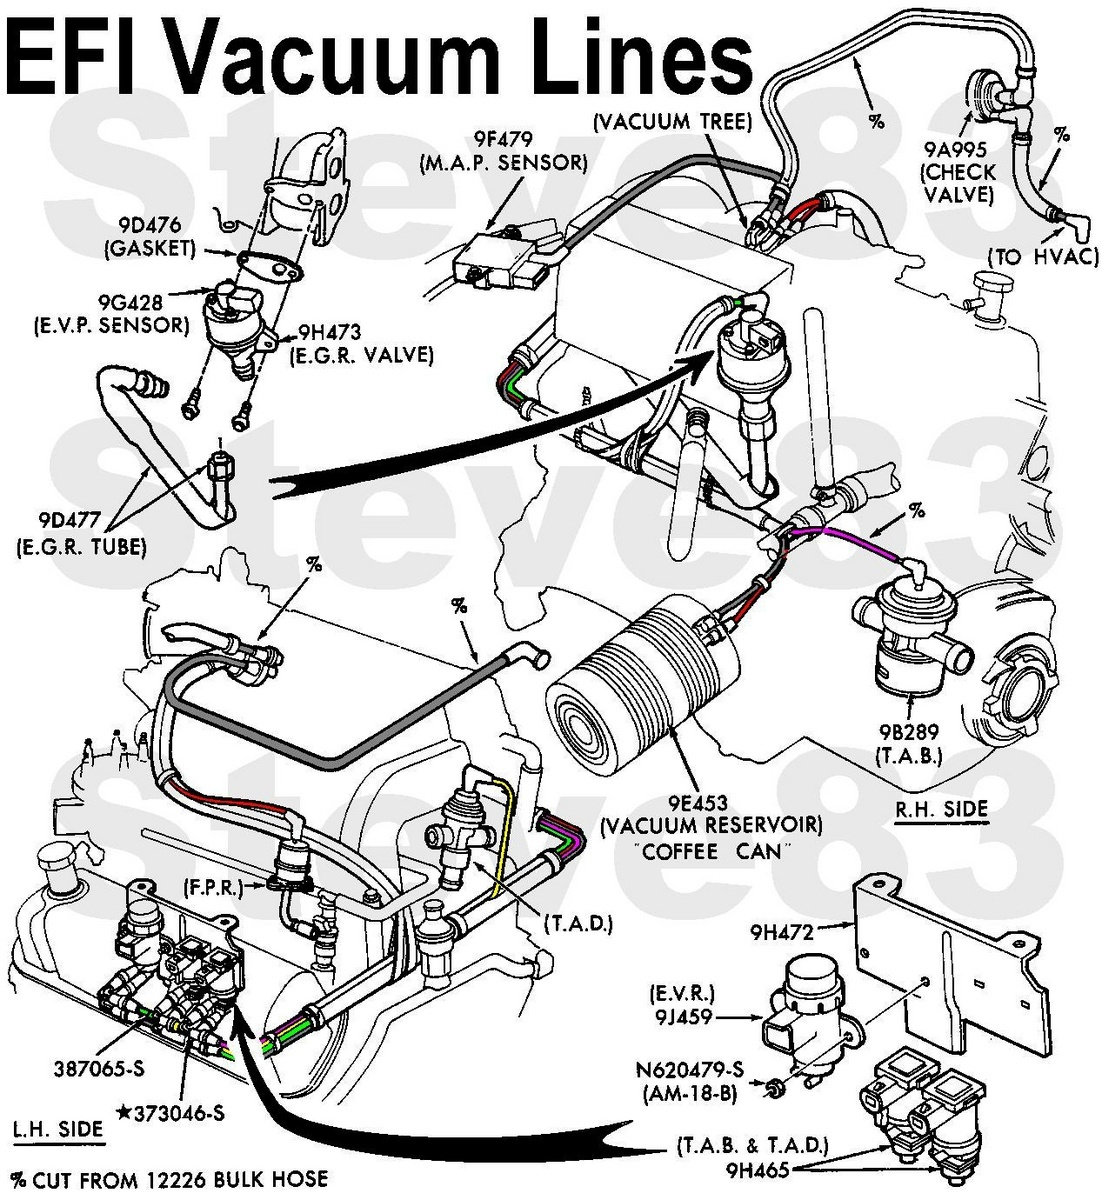 Ford F-150 Questions - Is there a diagram for vacuum hoses ... on 92 nissan maxima engine diagram, 1998 ford f-150 engine diagram, 92 honda civic engine diagram, 92 chevy s10 engine diagram, 92 jeep wrangler engine diagram, 92 subaru legacy engine diagram, 92 honda accord engine diagram, 92 nissan sentra engine diagram, 92 jeep cherokee engine diagram,